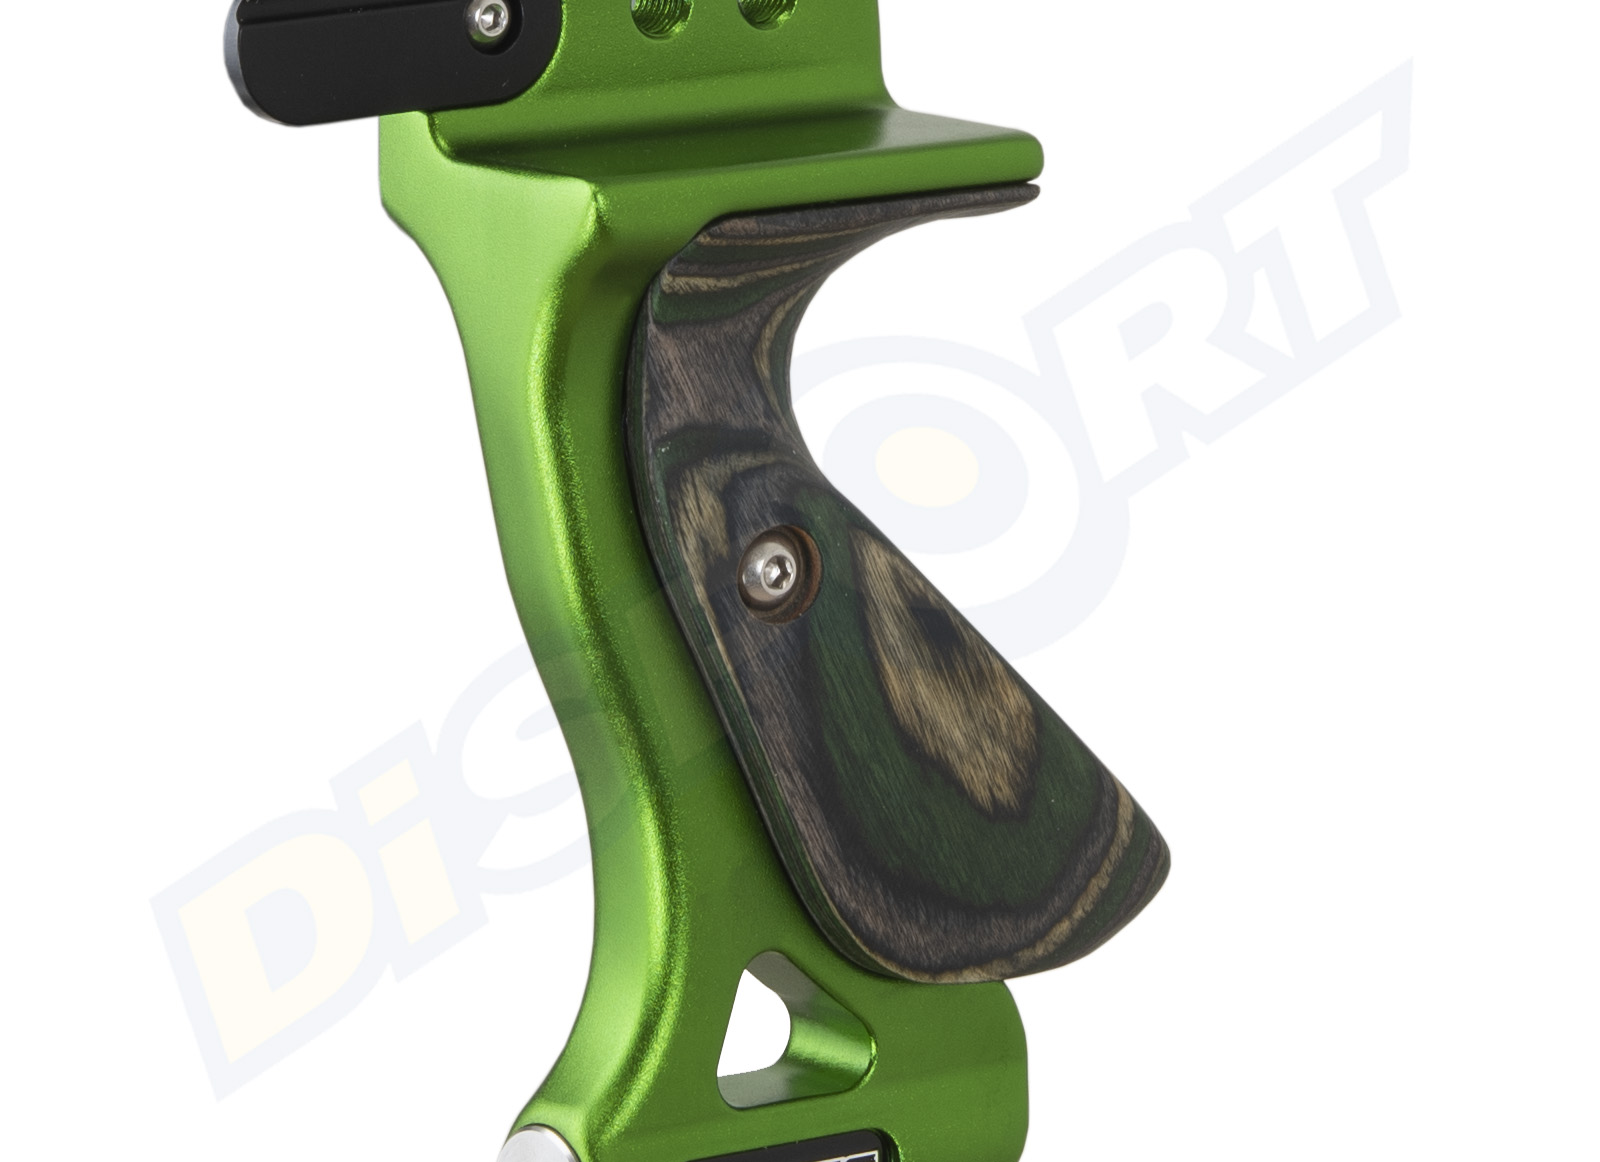 KINETIC GRIP FORGED STYLIZED ORIGINALE IN LEGNO